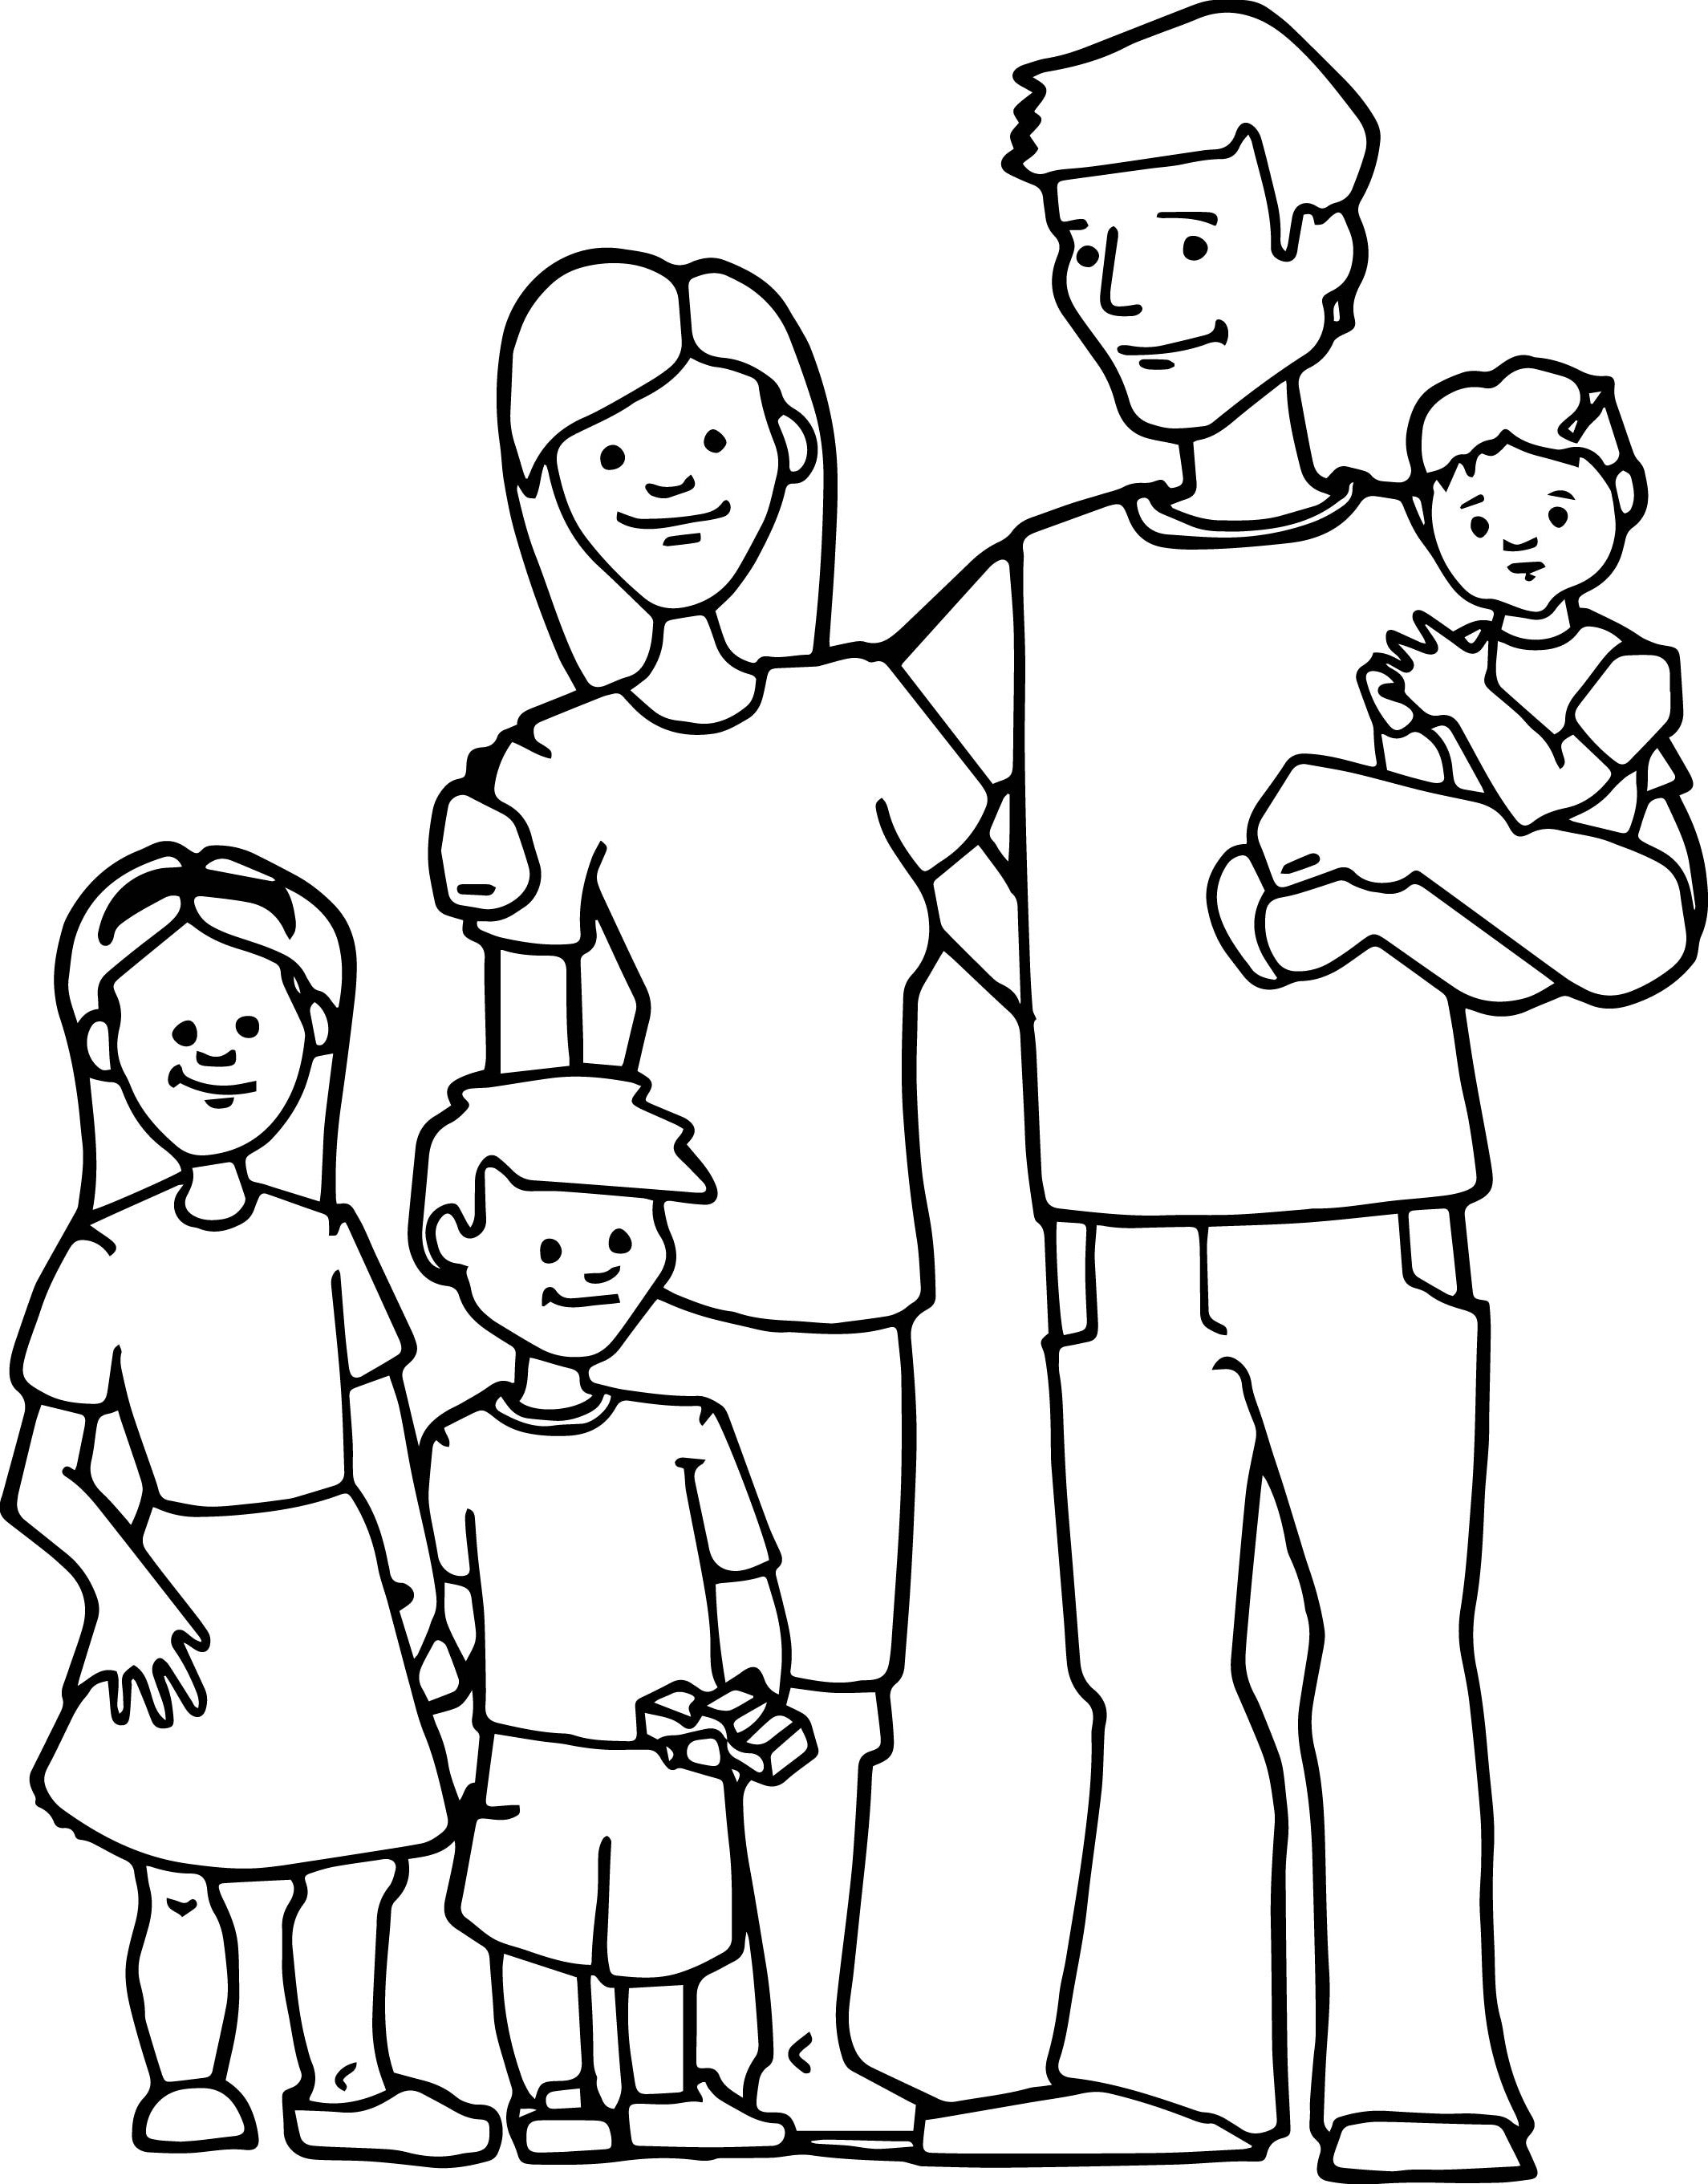 family coloring sheets get this free simple family coloring pages for children coloring sheets family